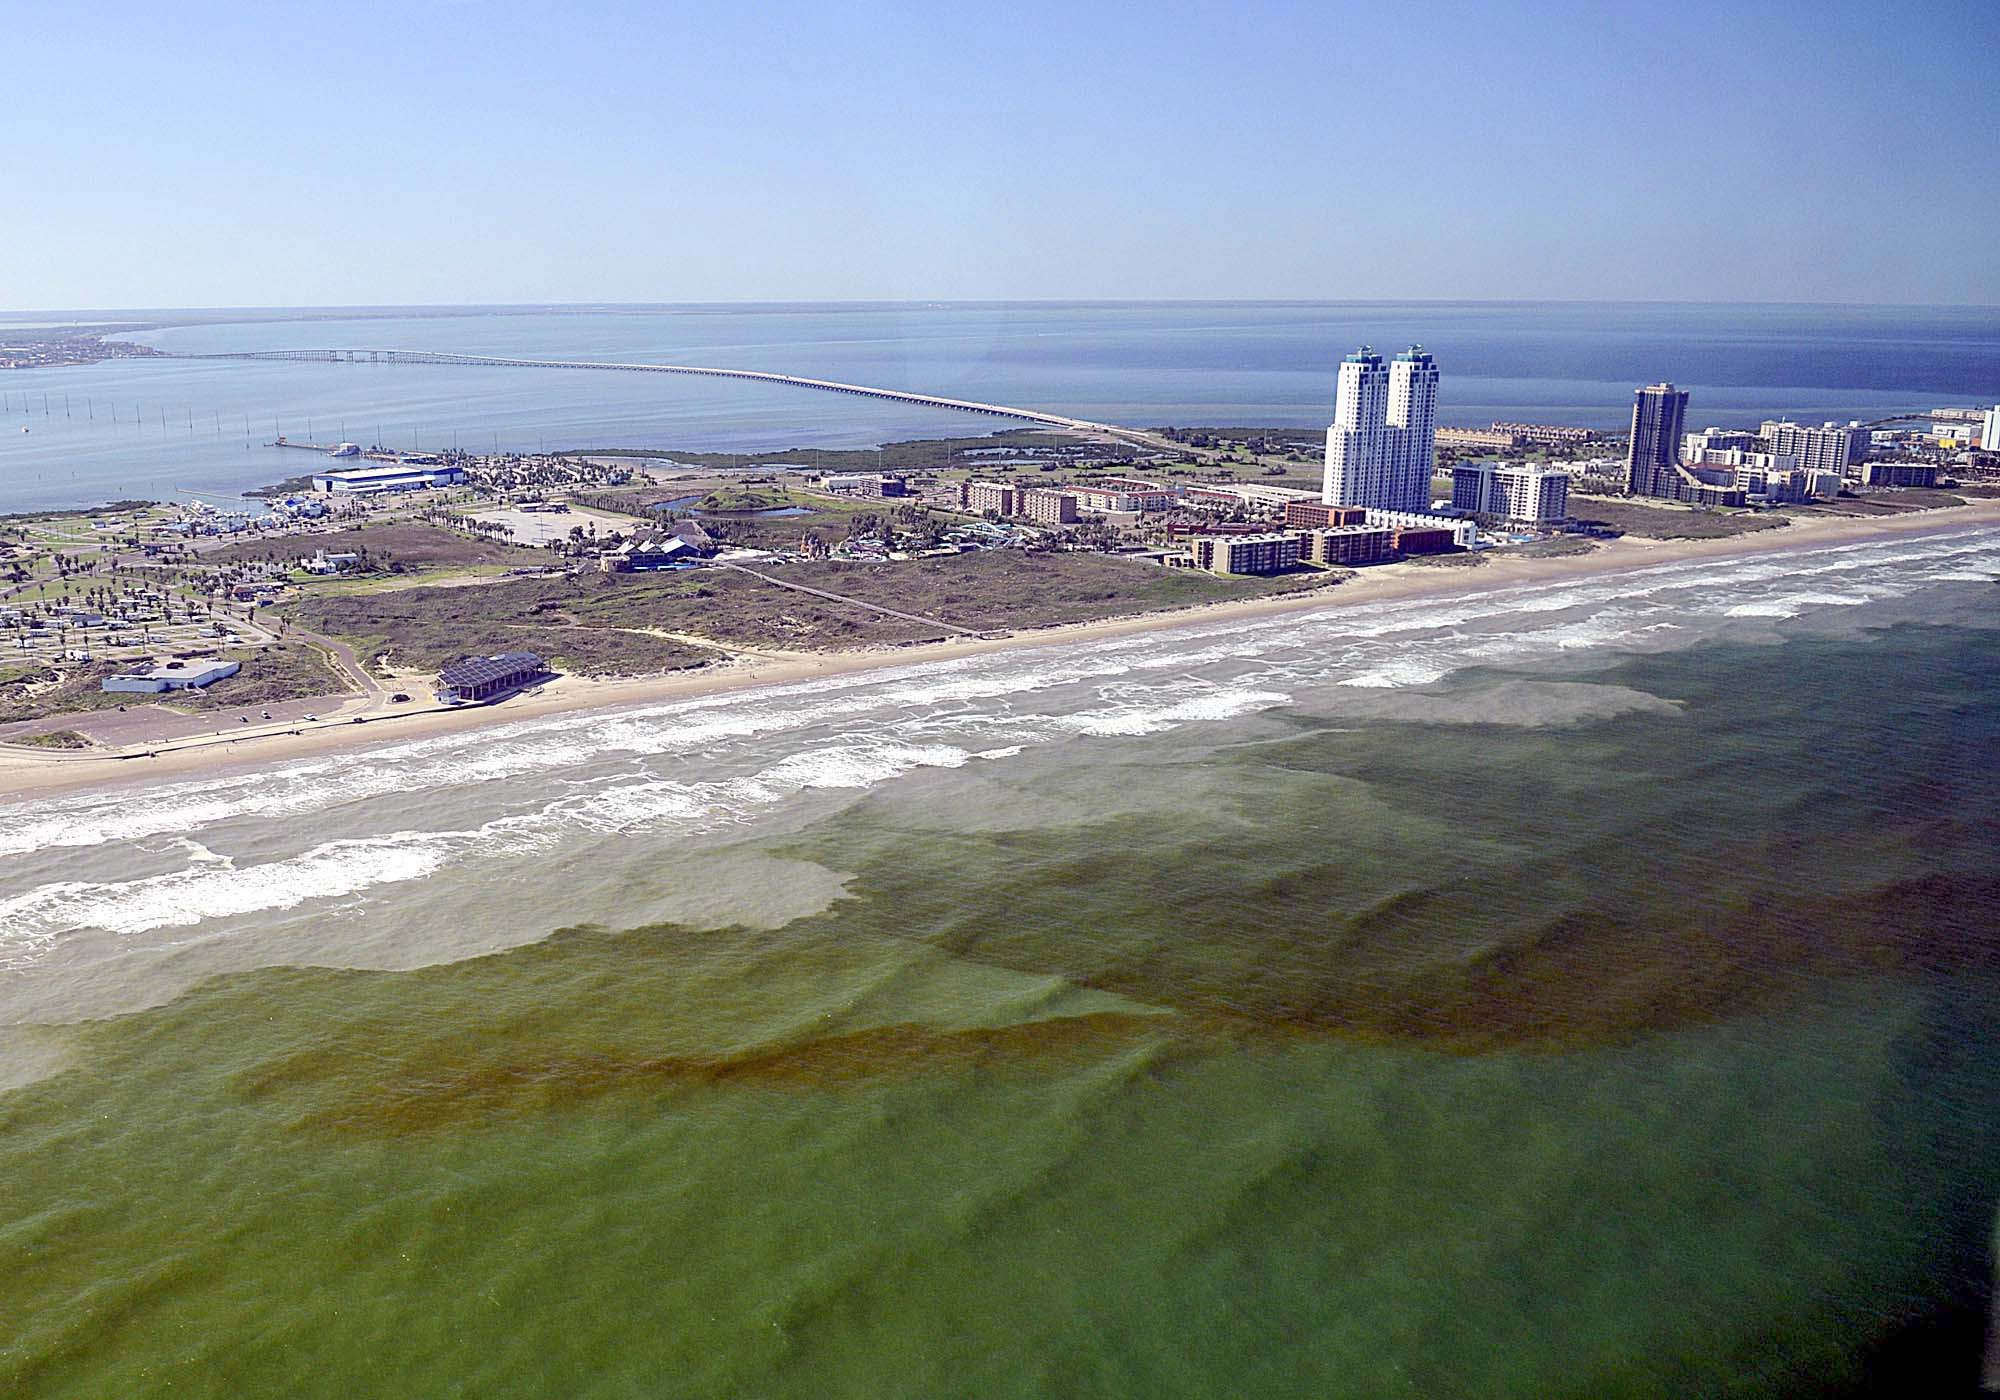 Red tide in Texas brings fish kills, scientific approach into causes